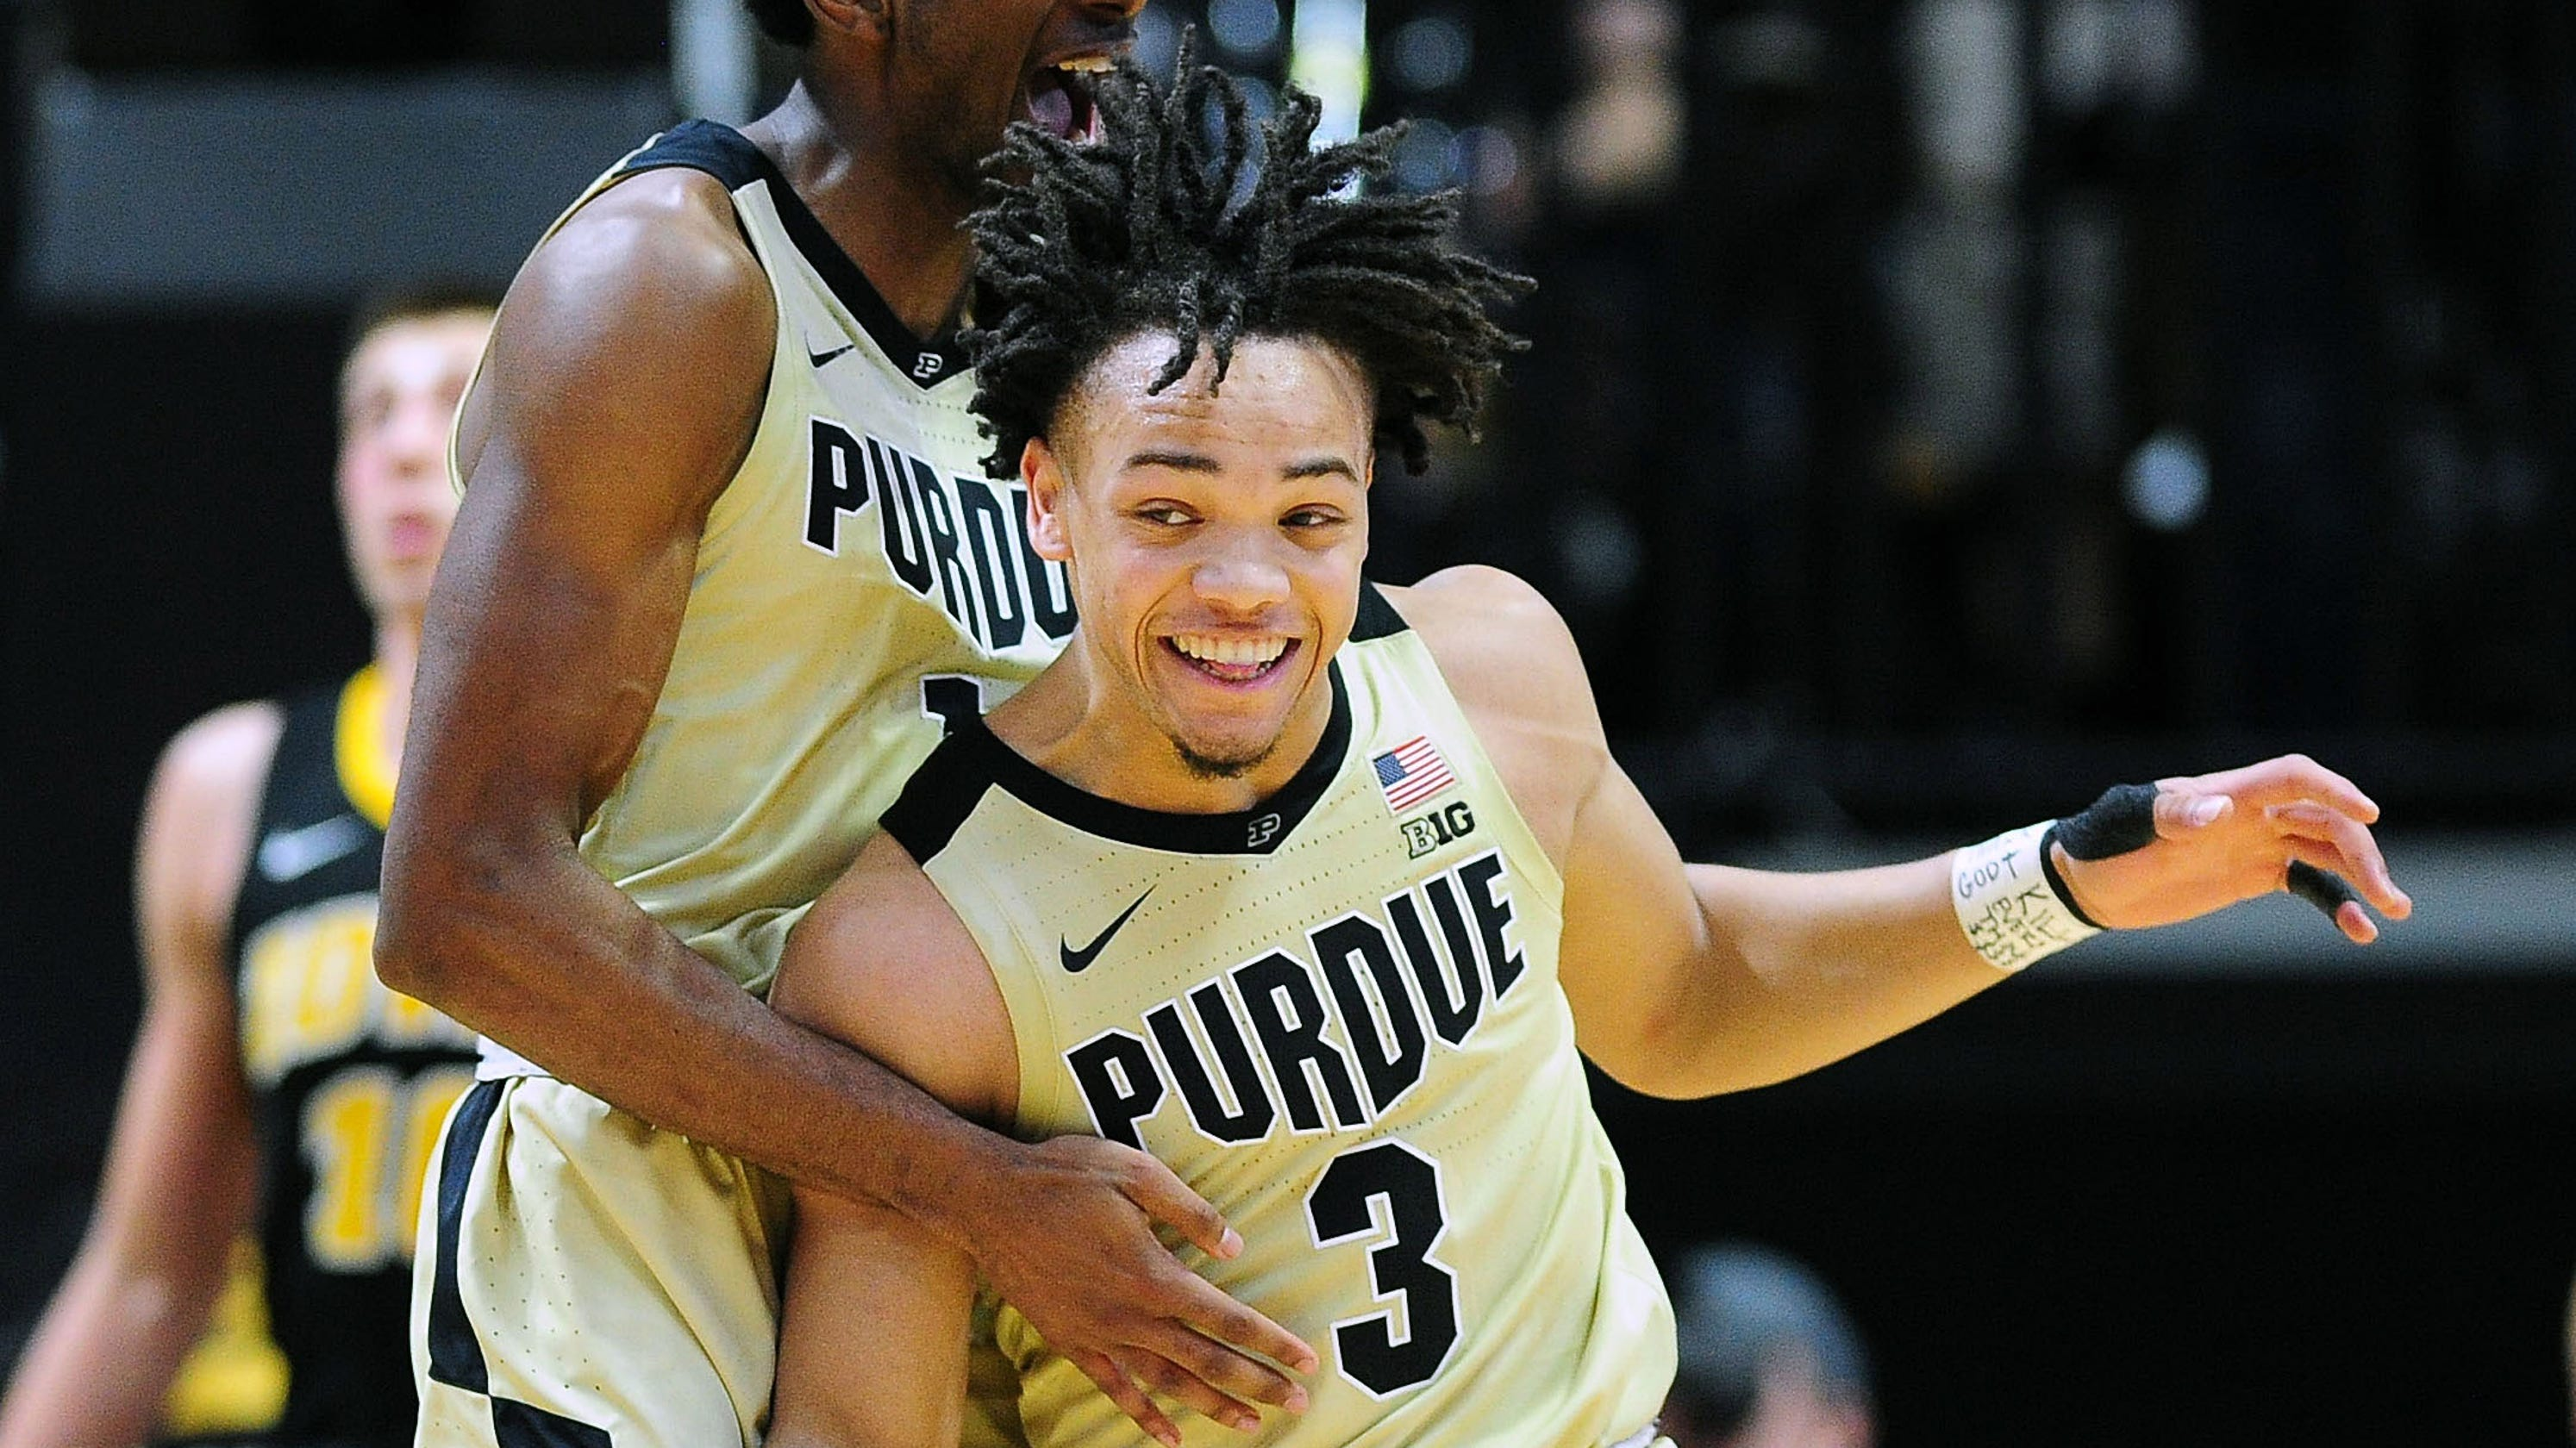 What Carsen Edwards Nba Draft Decision Means For Purdue Basketball